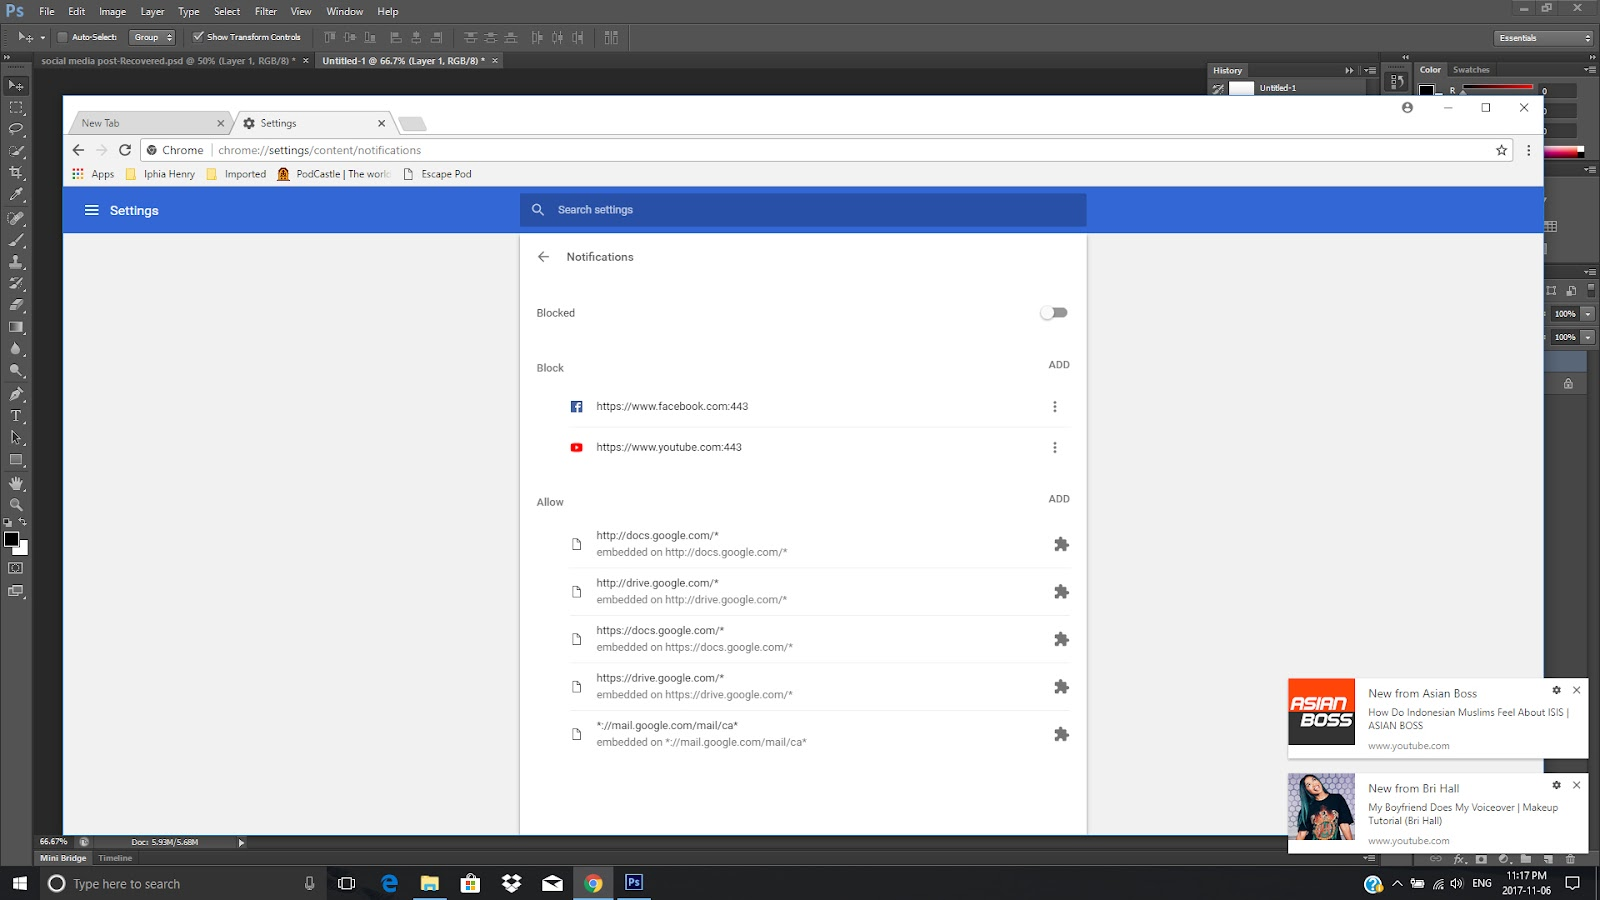 adobe acrobat extension for google chrome keeps popping up